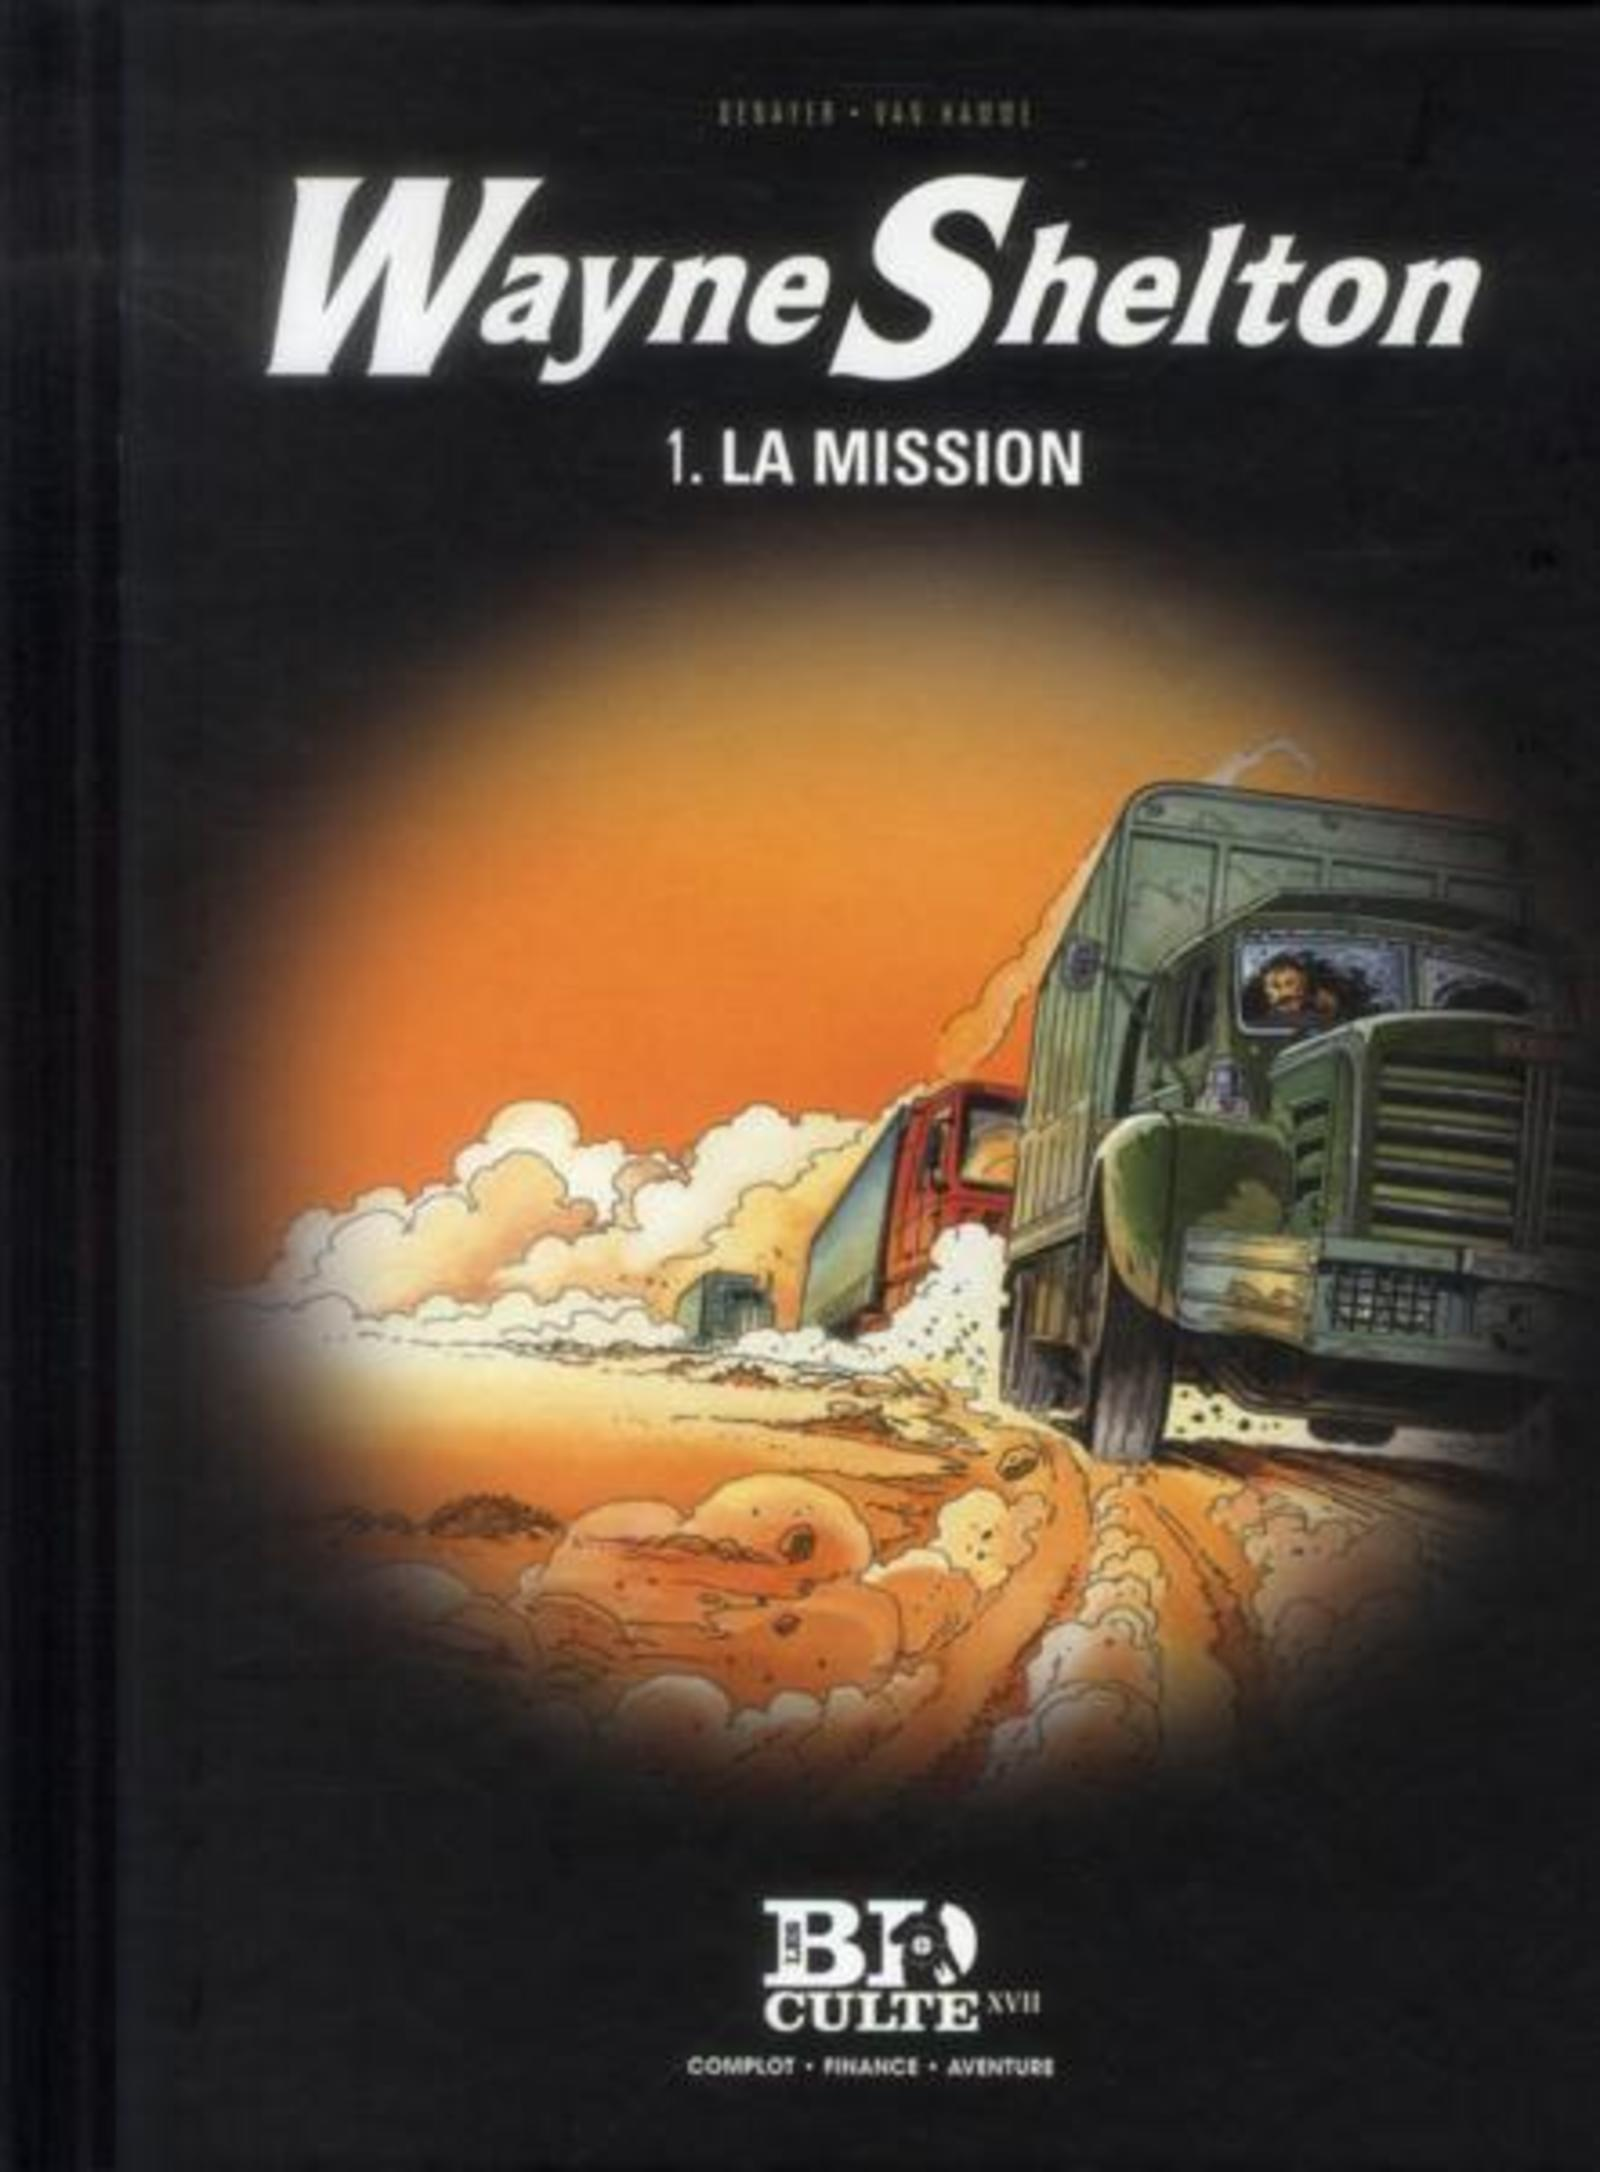 WAYNE SHELTON T1  LA MISSION  VOLUME 17